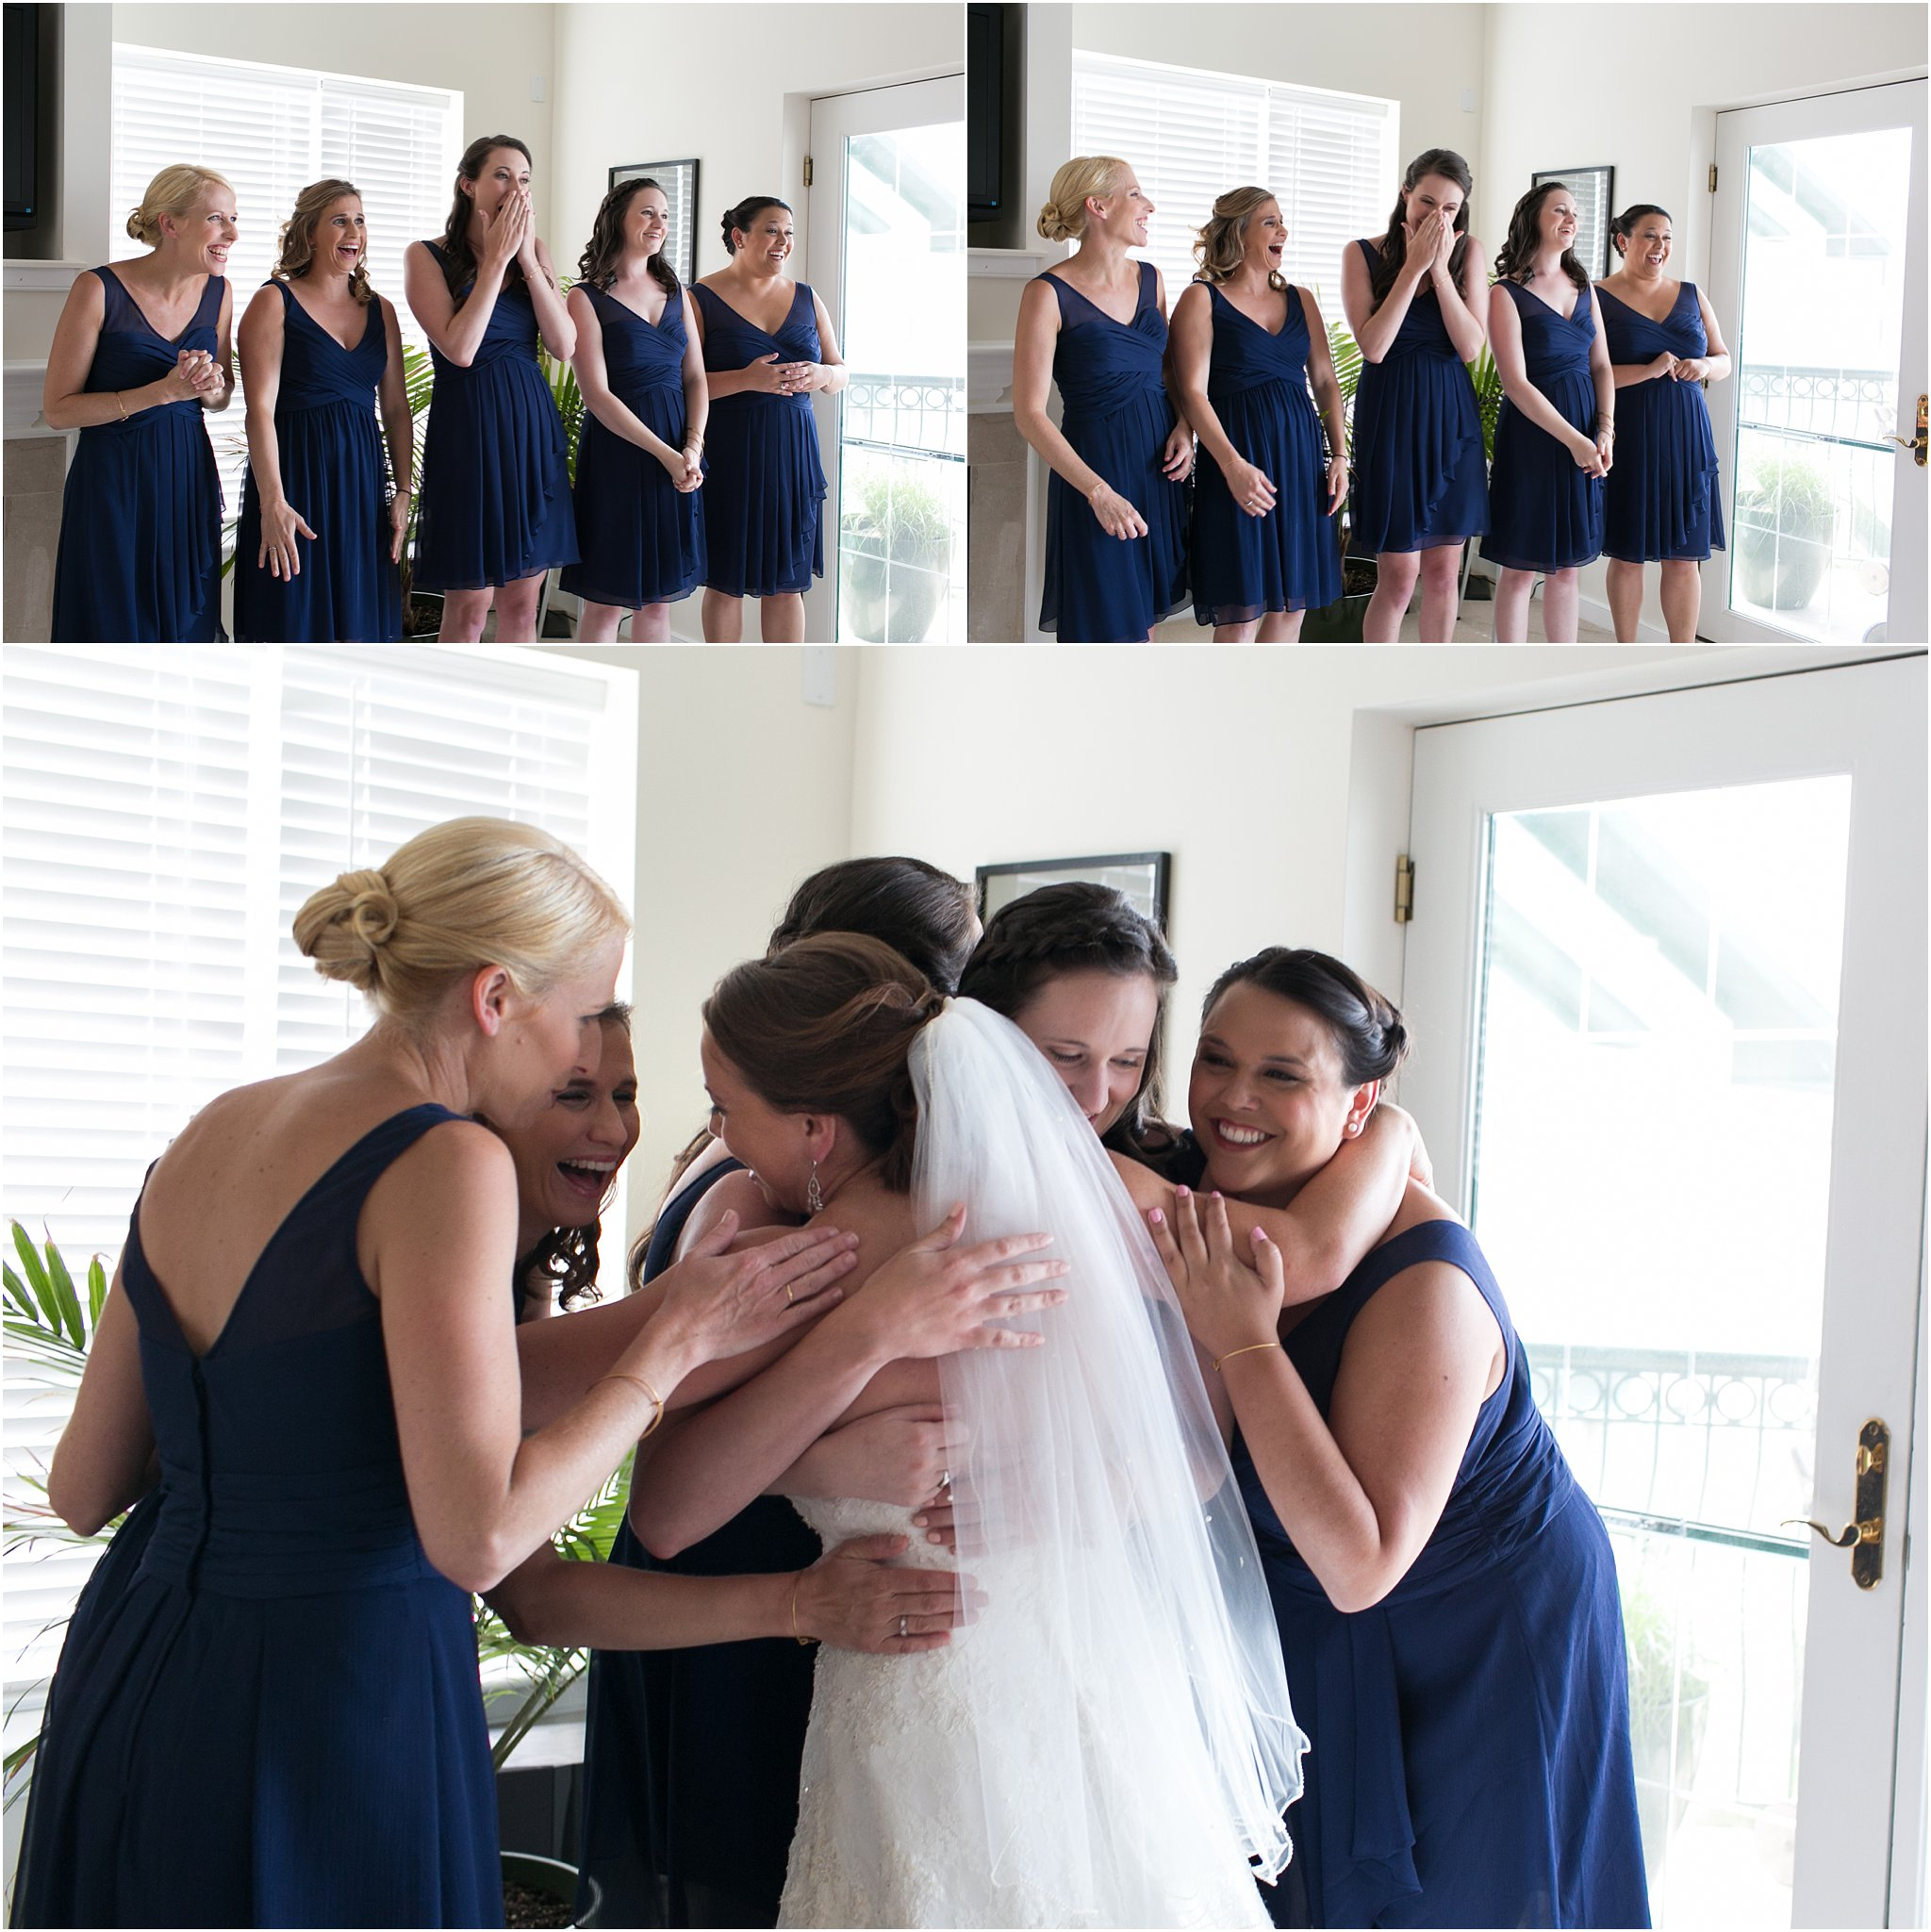 jessica_ryan_photography_wedding_photography_virginiabeach_virginia_candid_authentic_wedding_portraits_marina_shores_yacht_club_chesapeake_bay_1834